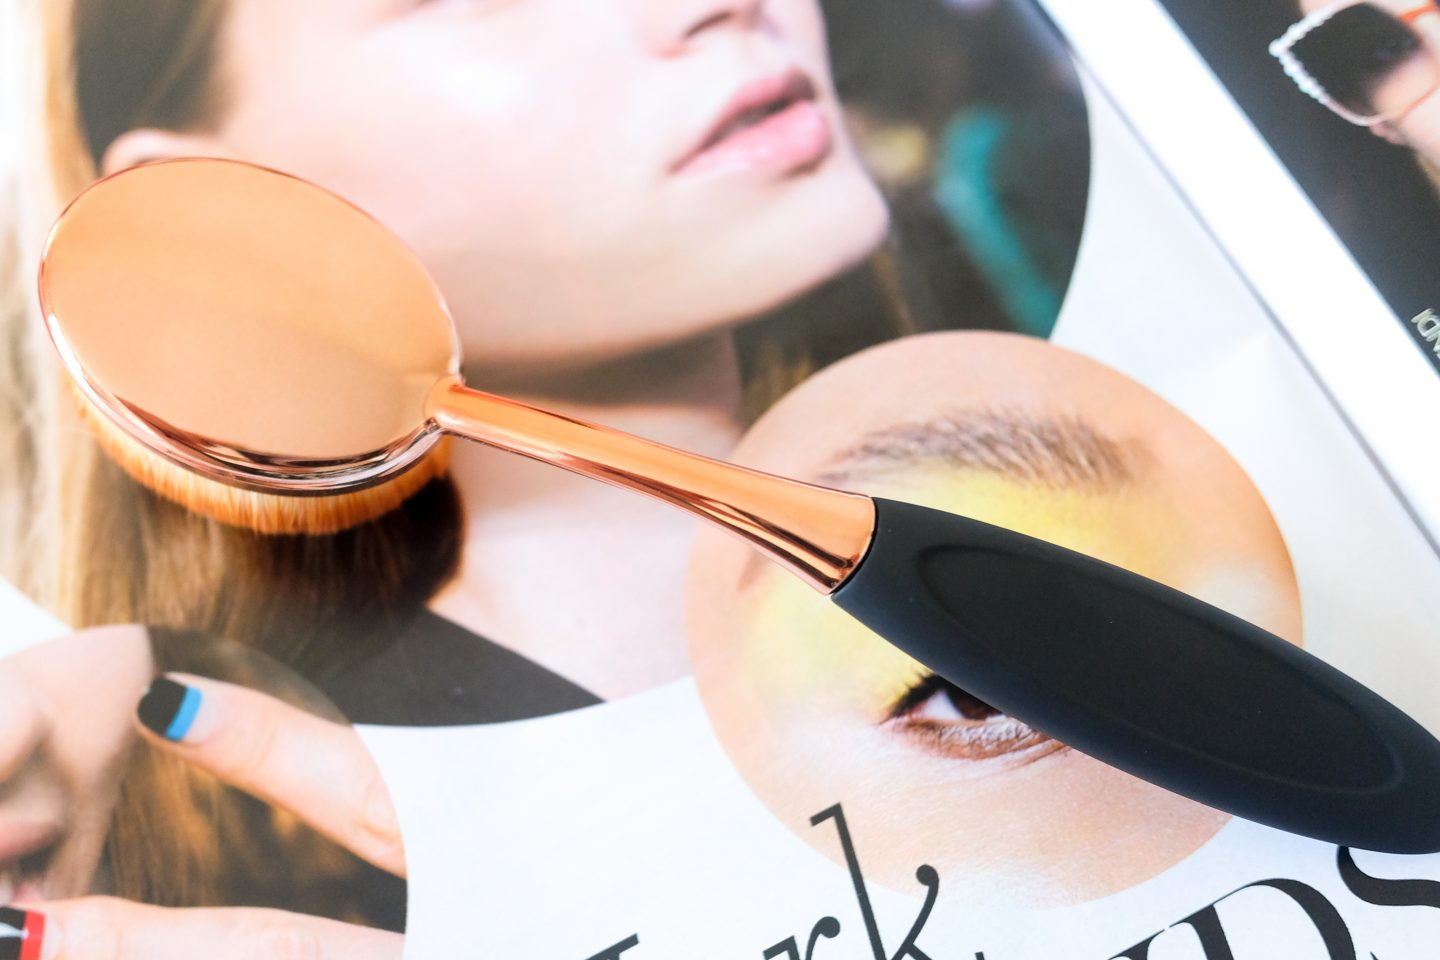 How to Use Oval/Toothbrush Shaped Makeup Brushes